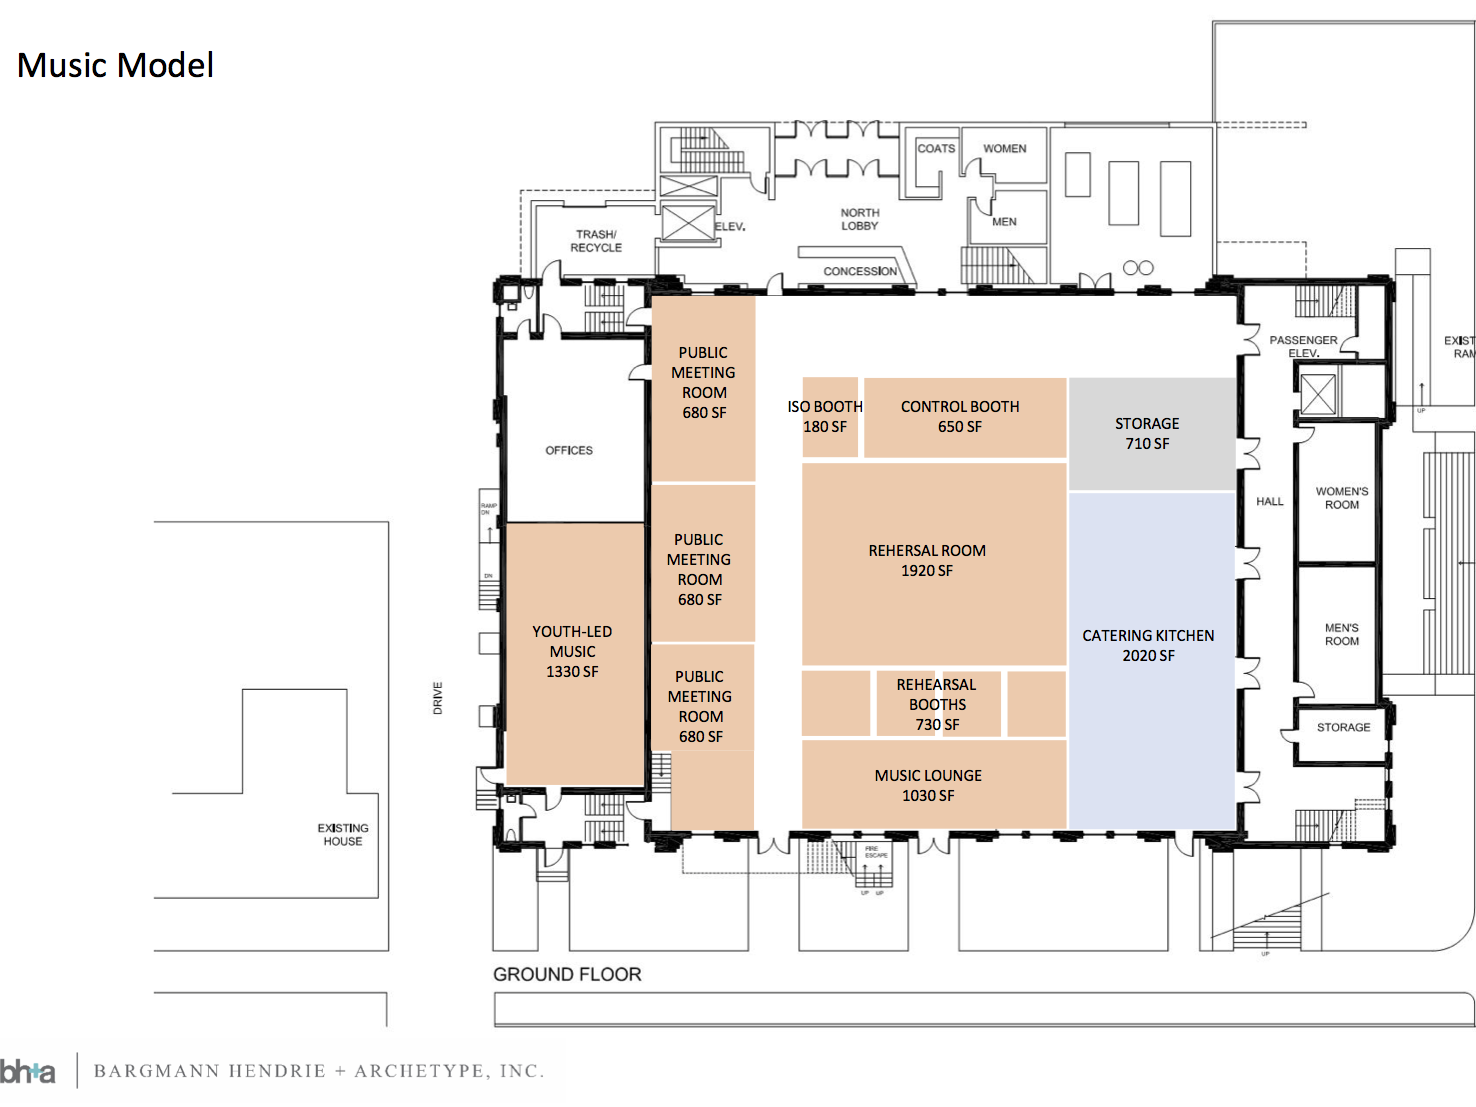 Music is emphasized in one of three proposed ground floor plans for the rehabilitation of Memorial Auditorium, presented by CEDO at a public meeting Oct. 11, 2018.